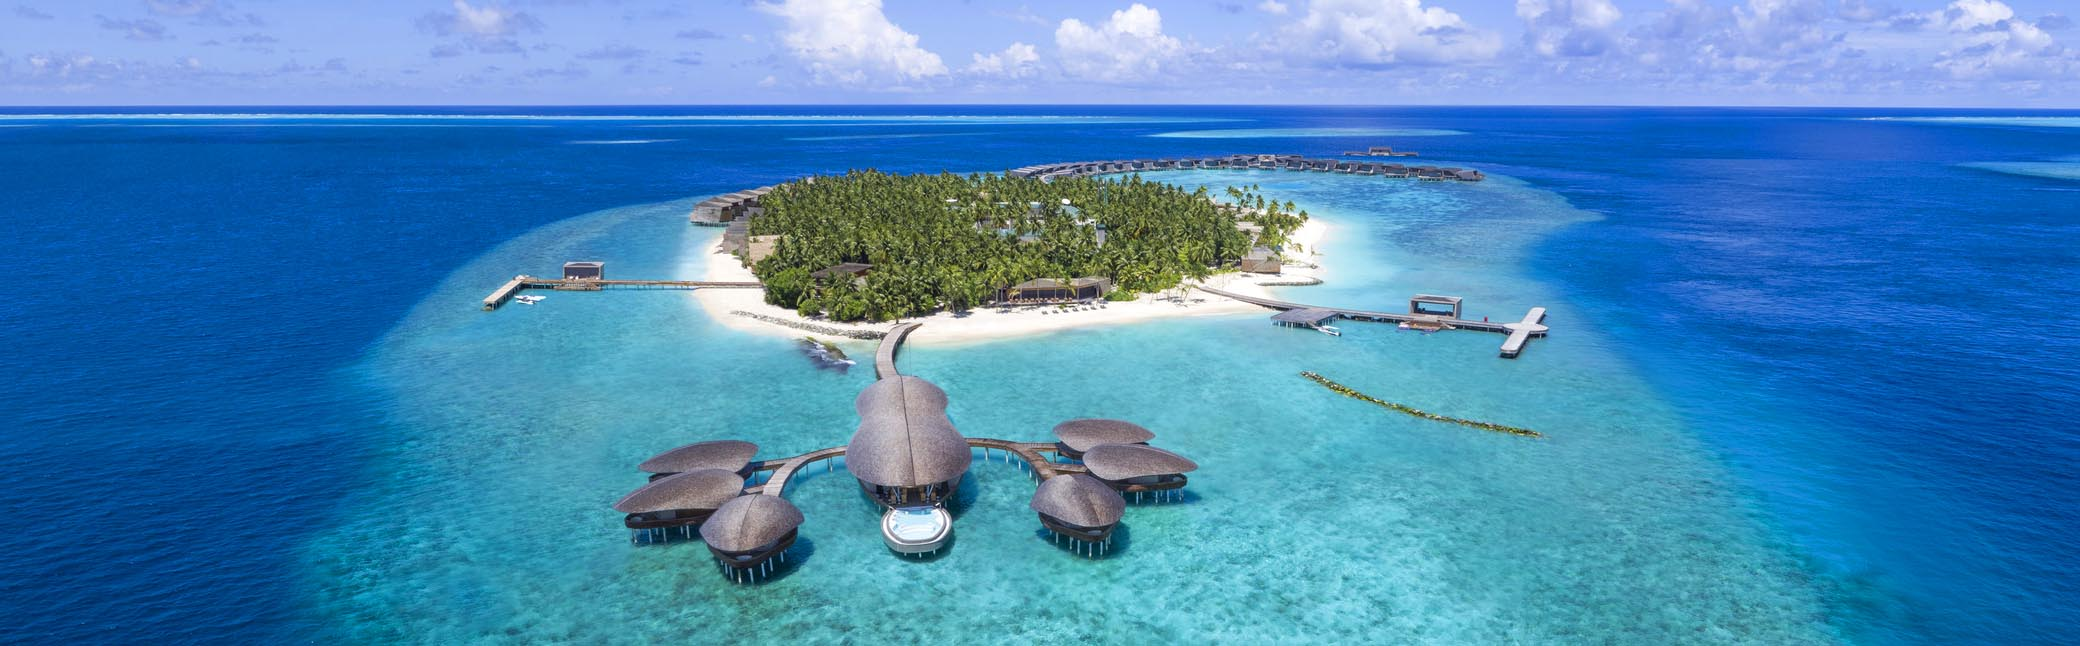 Maldives Honeymoon Resorts